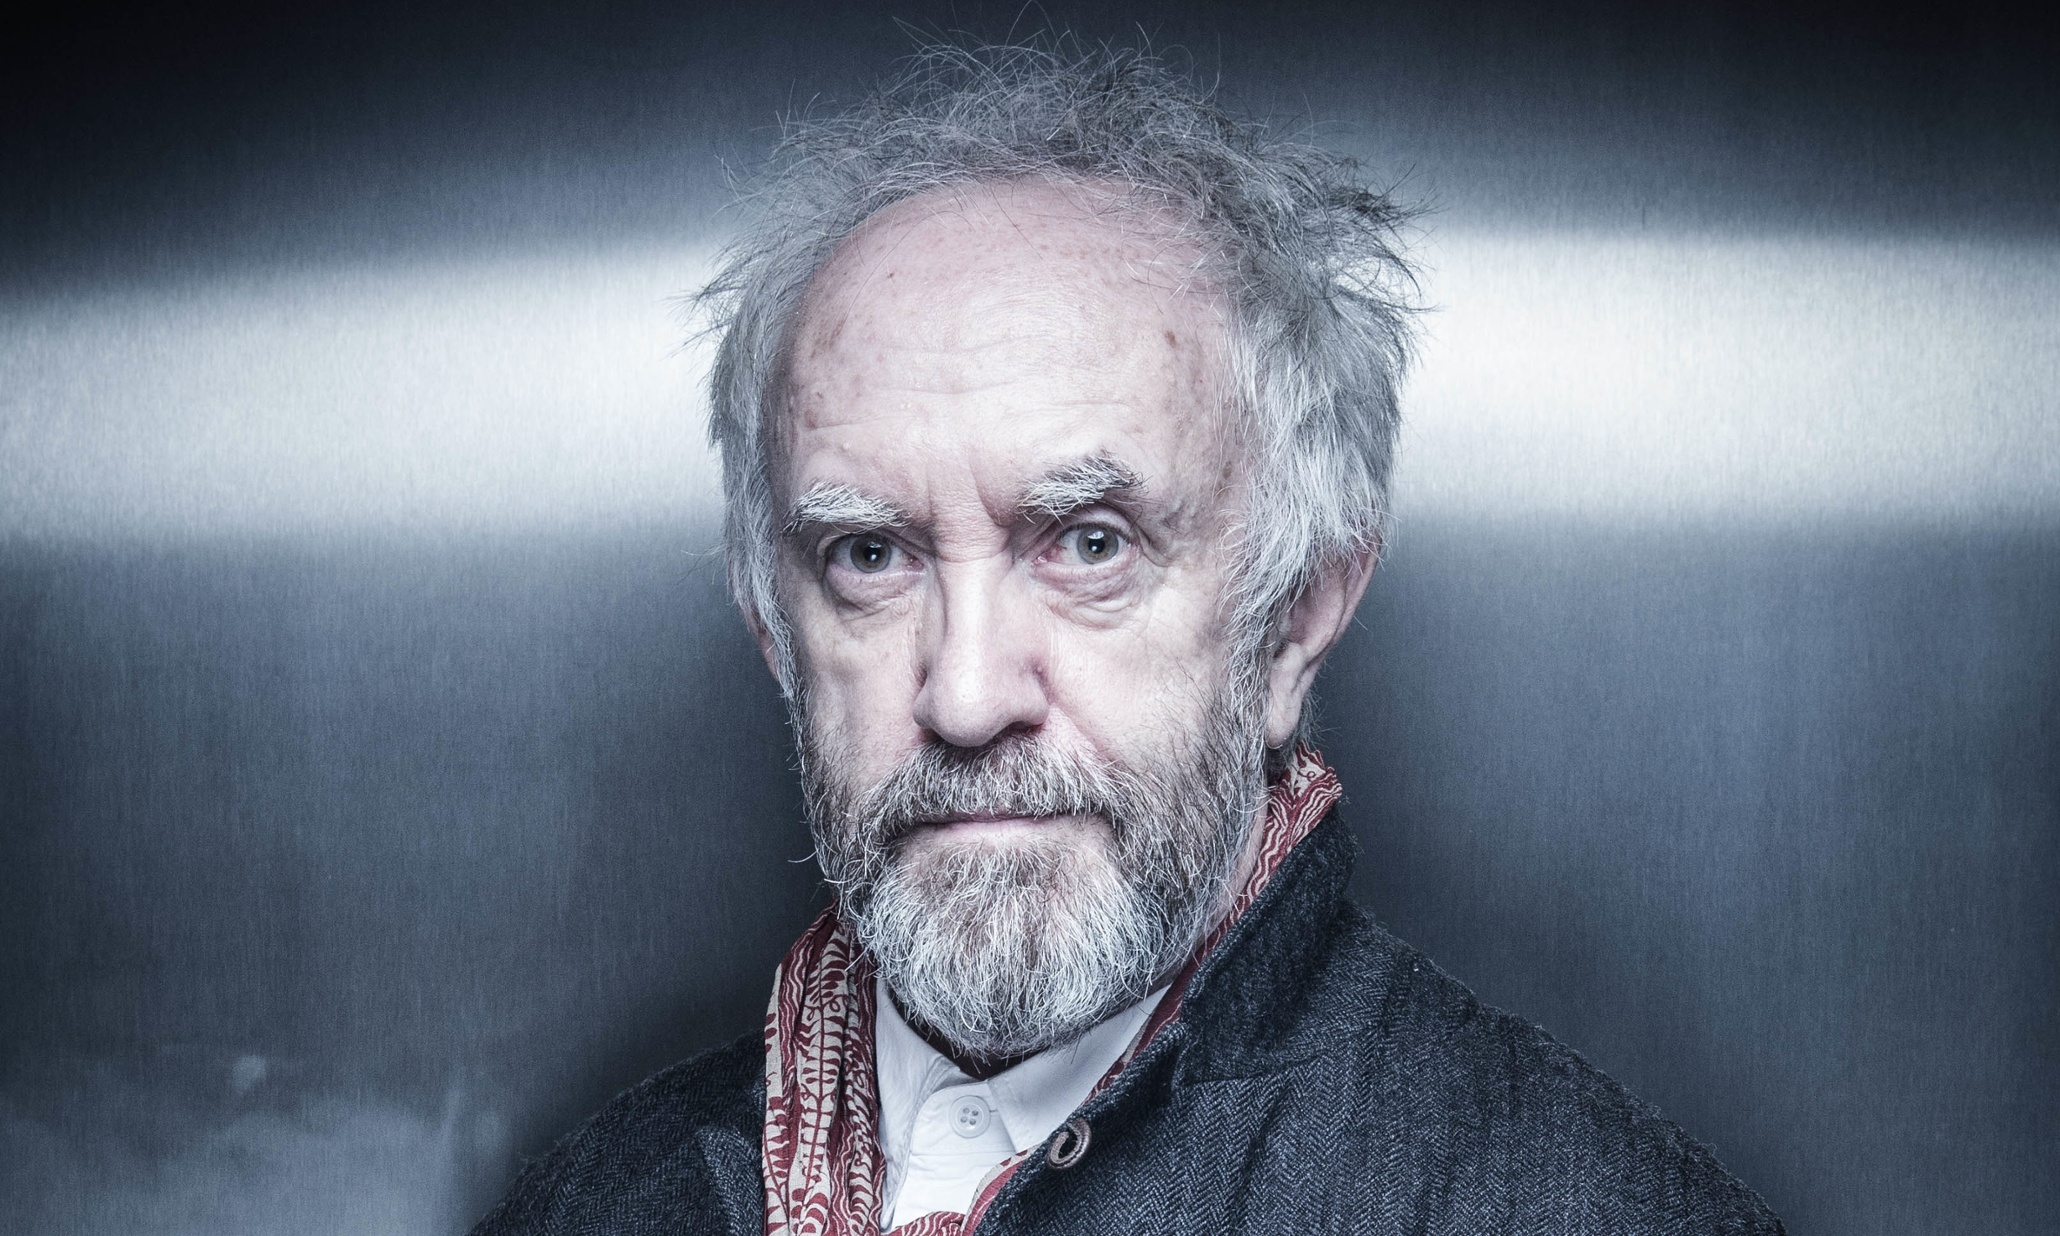 jonathan prycejonathan pryce brazil, jonathan pryce pirates of the caribbean, jonathan pryce height, jonathan pryce net worth, jonathan pryce musical, jonathan pryce filmographie, jonathan pryce instagram, jonathan pryce singing, jonathan pryce game of thrones, jonathan pryce river phoenix, jonathan pryce command and conquer, jonathan pryce daughter, jonathan pryce imdb, jonathan pryce, jonathan pryce pope francis, jonathan pryce actor, jonathan pryce wiki, jonathan pryce hamlet, jonathan pryce young, jonathan pryce films